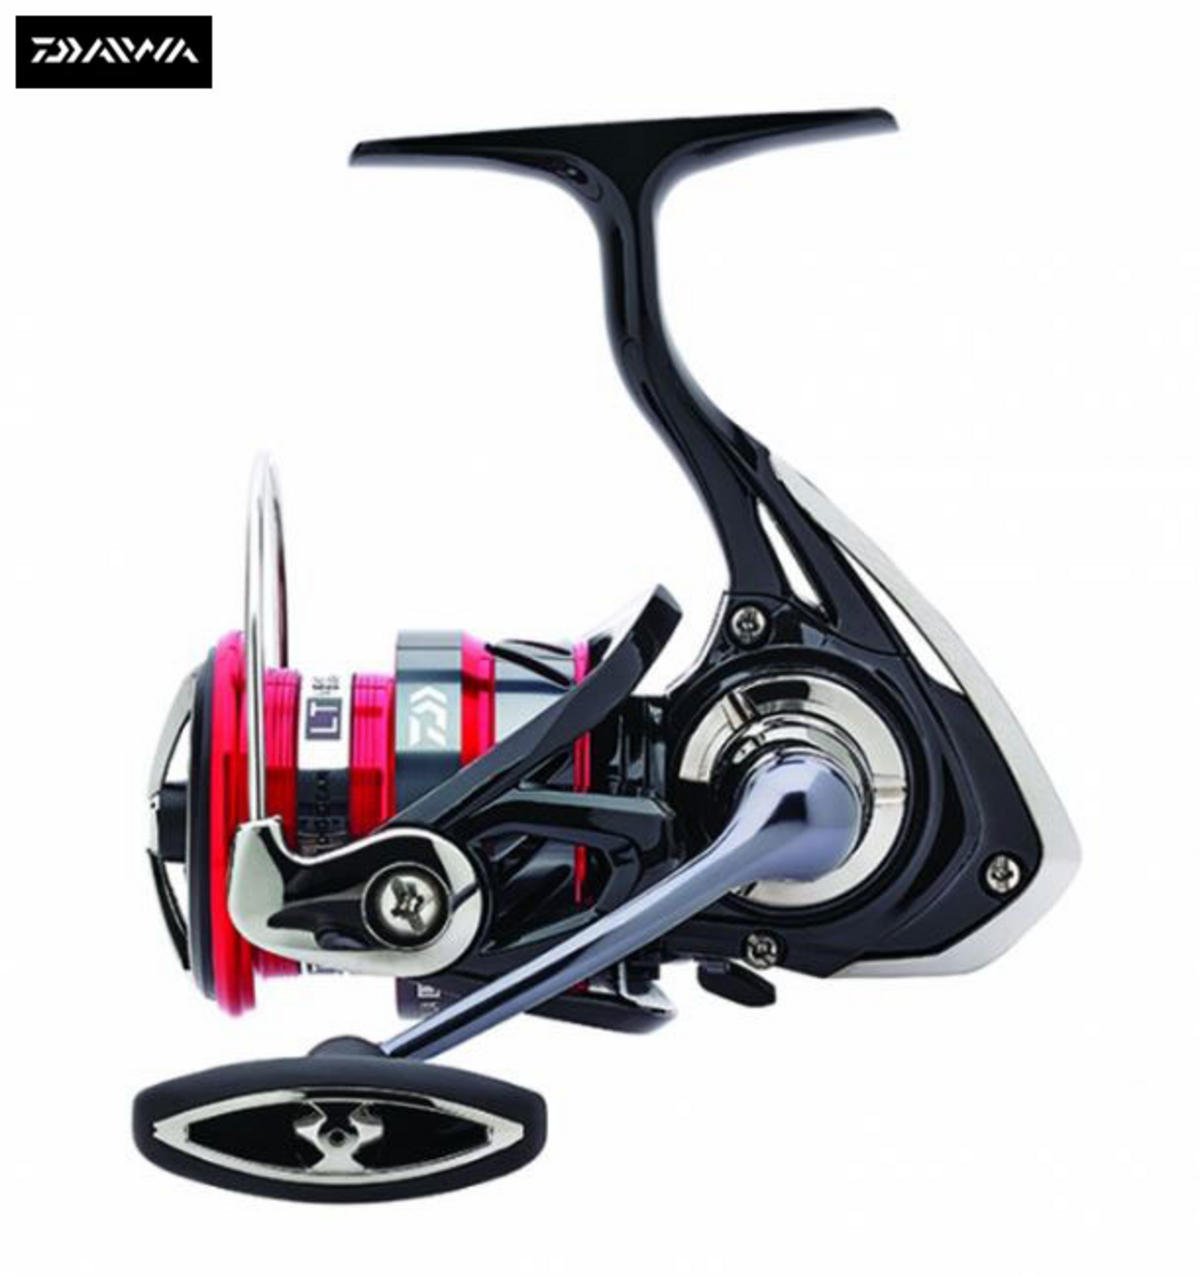 New Daiwa 18 Ninja LT Spinning Fishing Reel - All Models